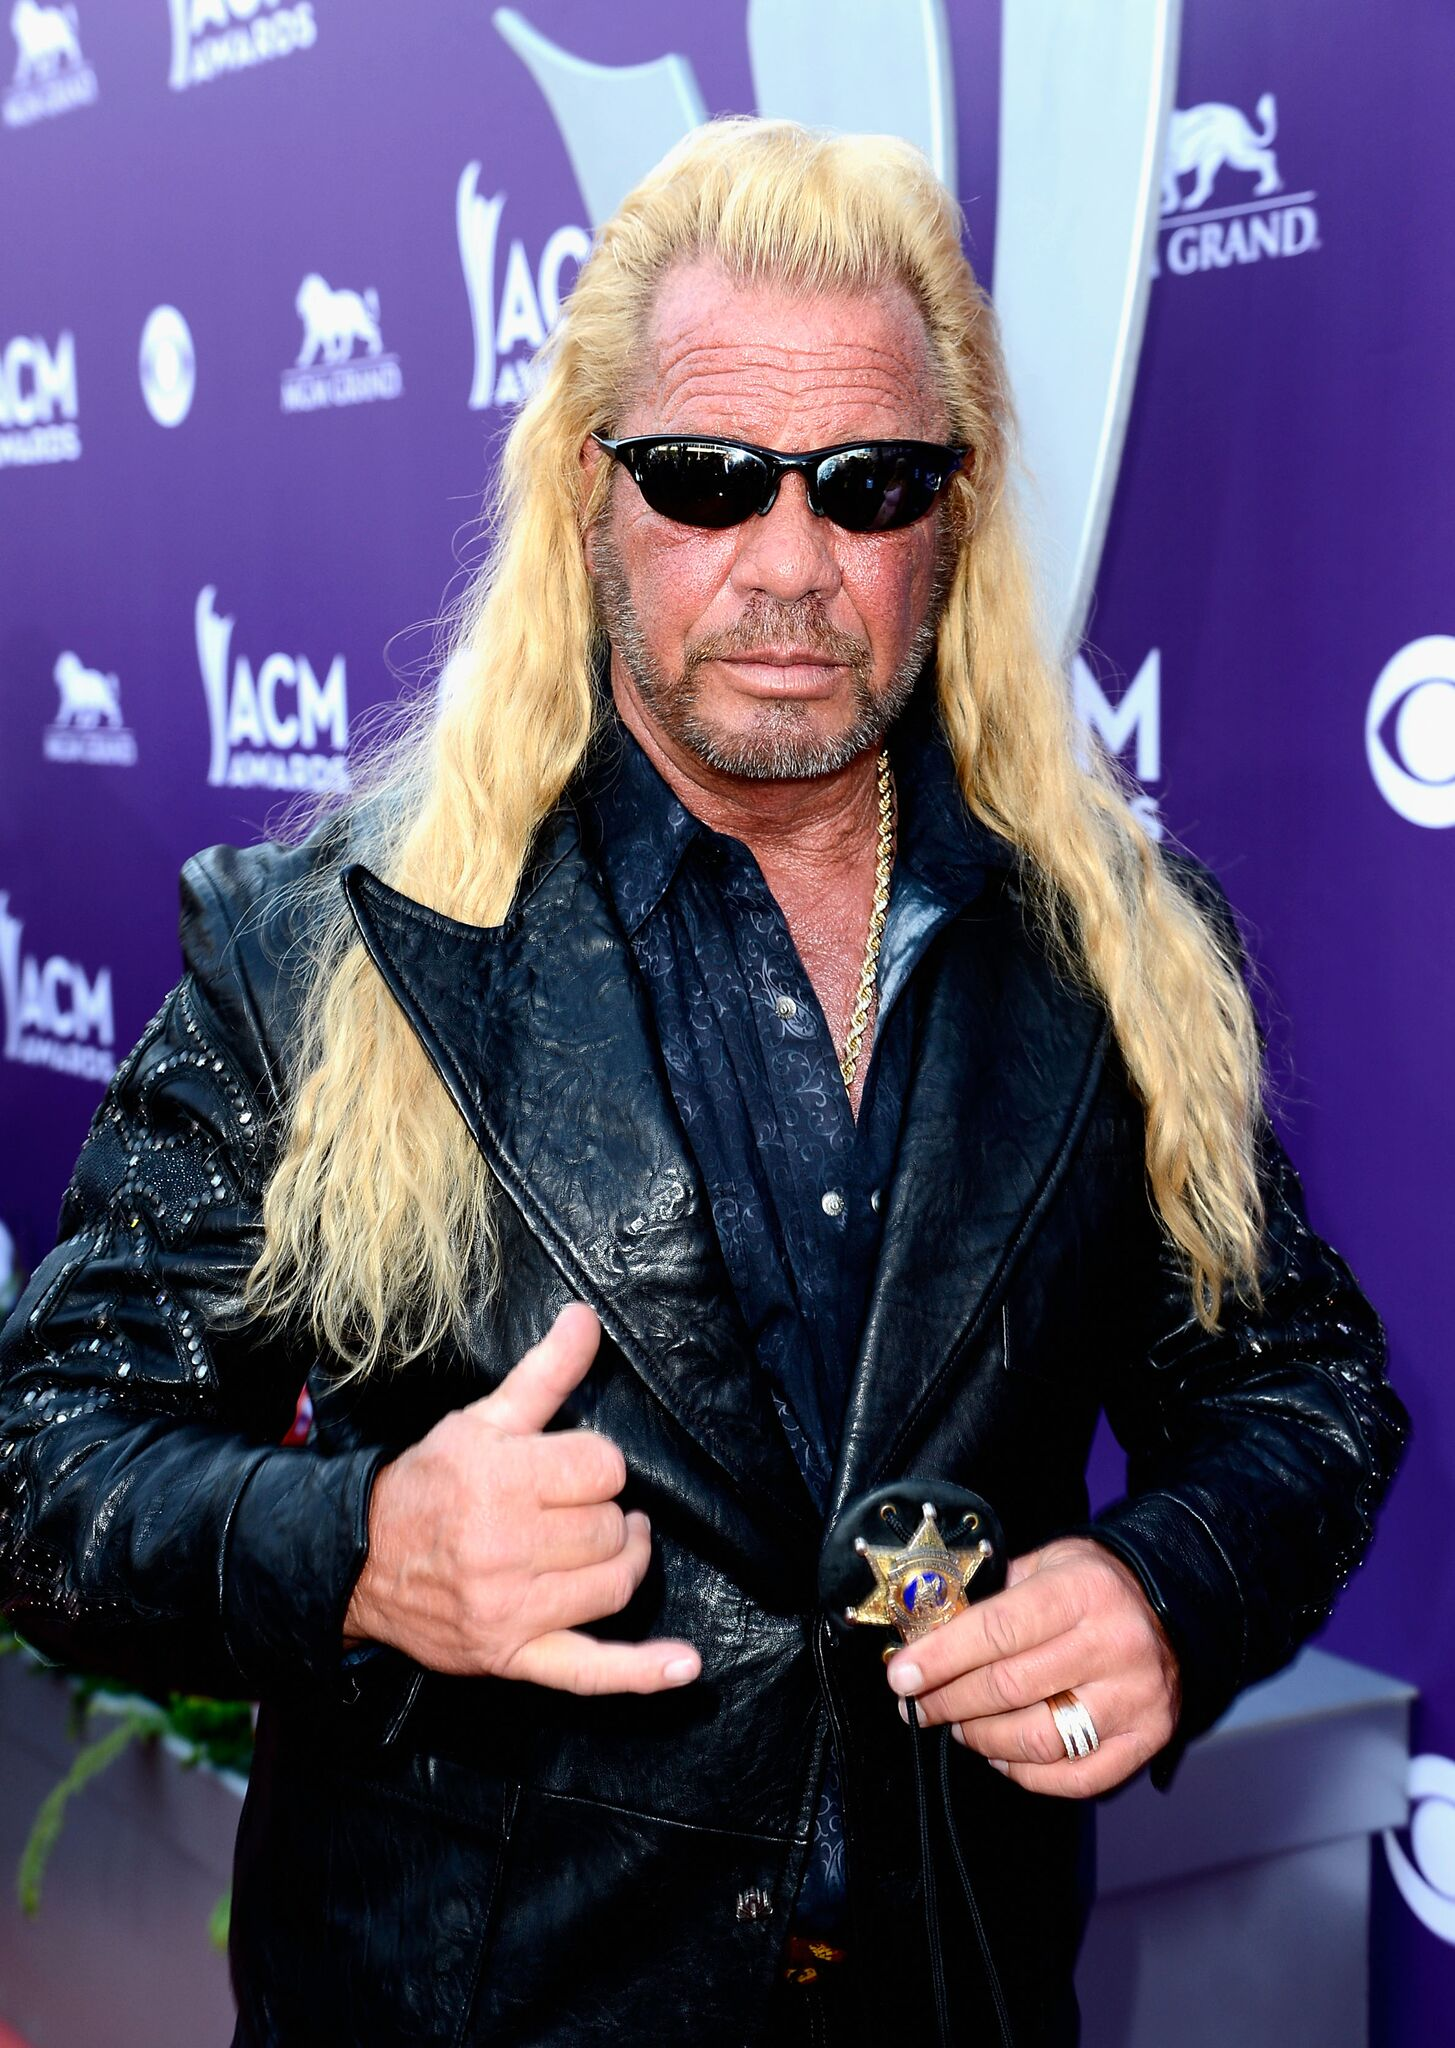 TV personality Dog the Bounty Hunter arrives at the 48th Annual Academy of Country Music Awards at the MGM Grand Garden Arena | Getty Images